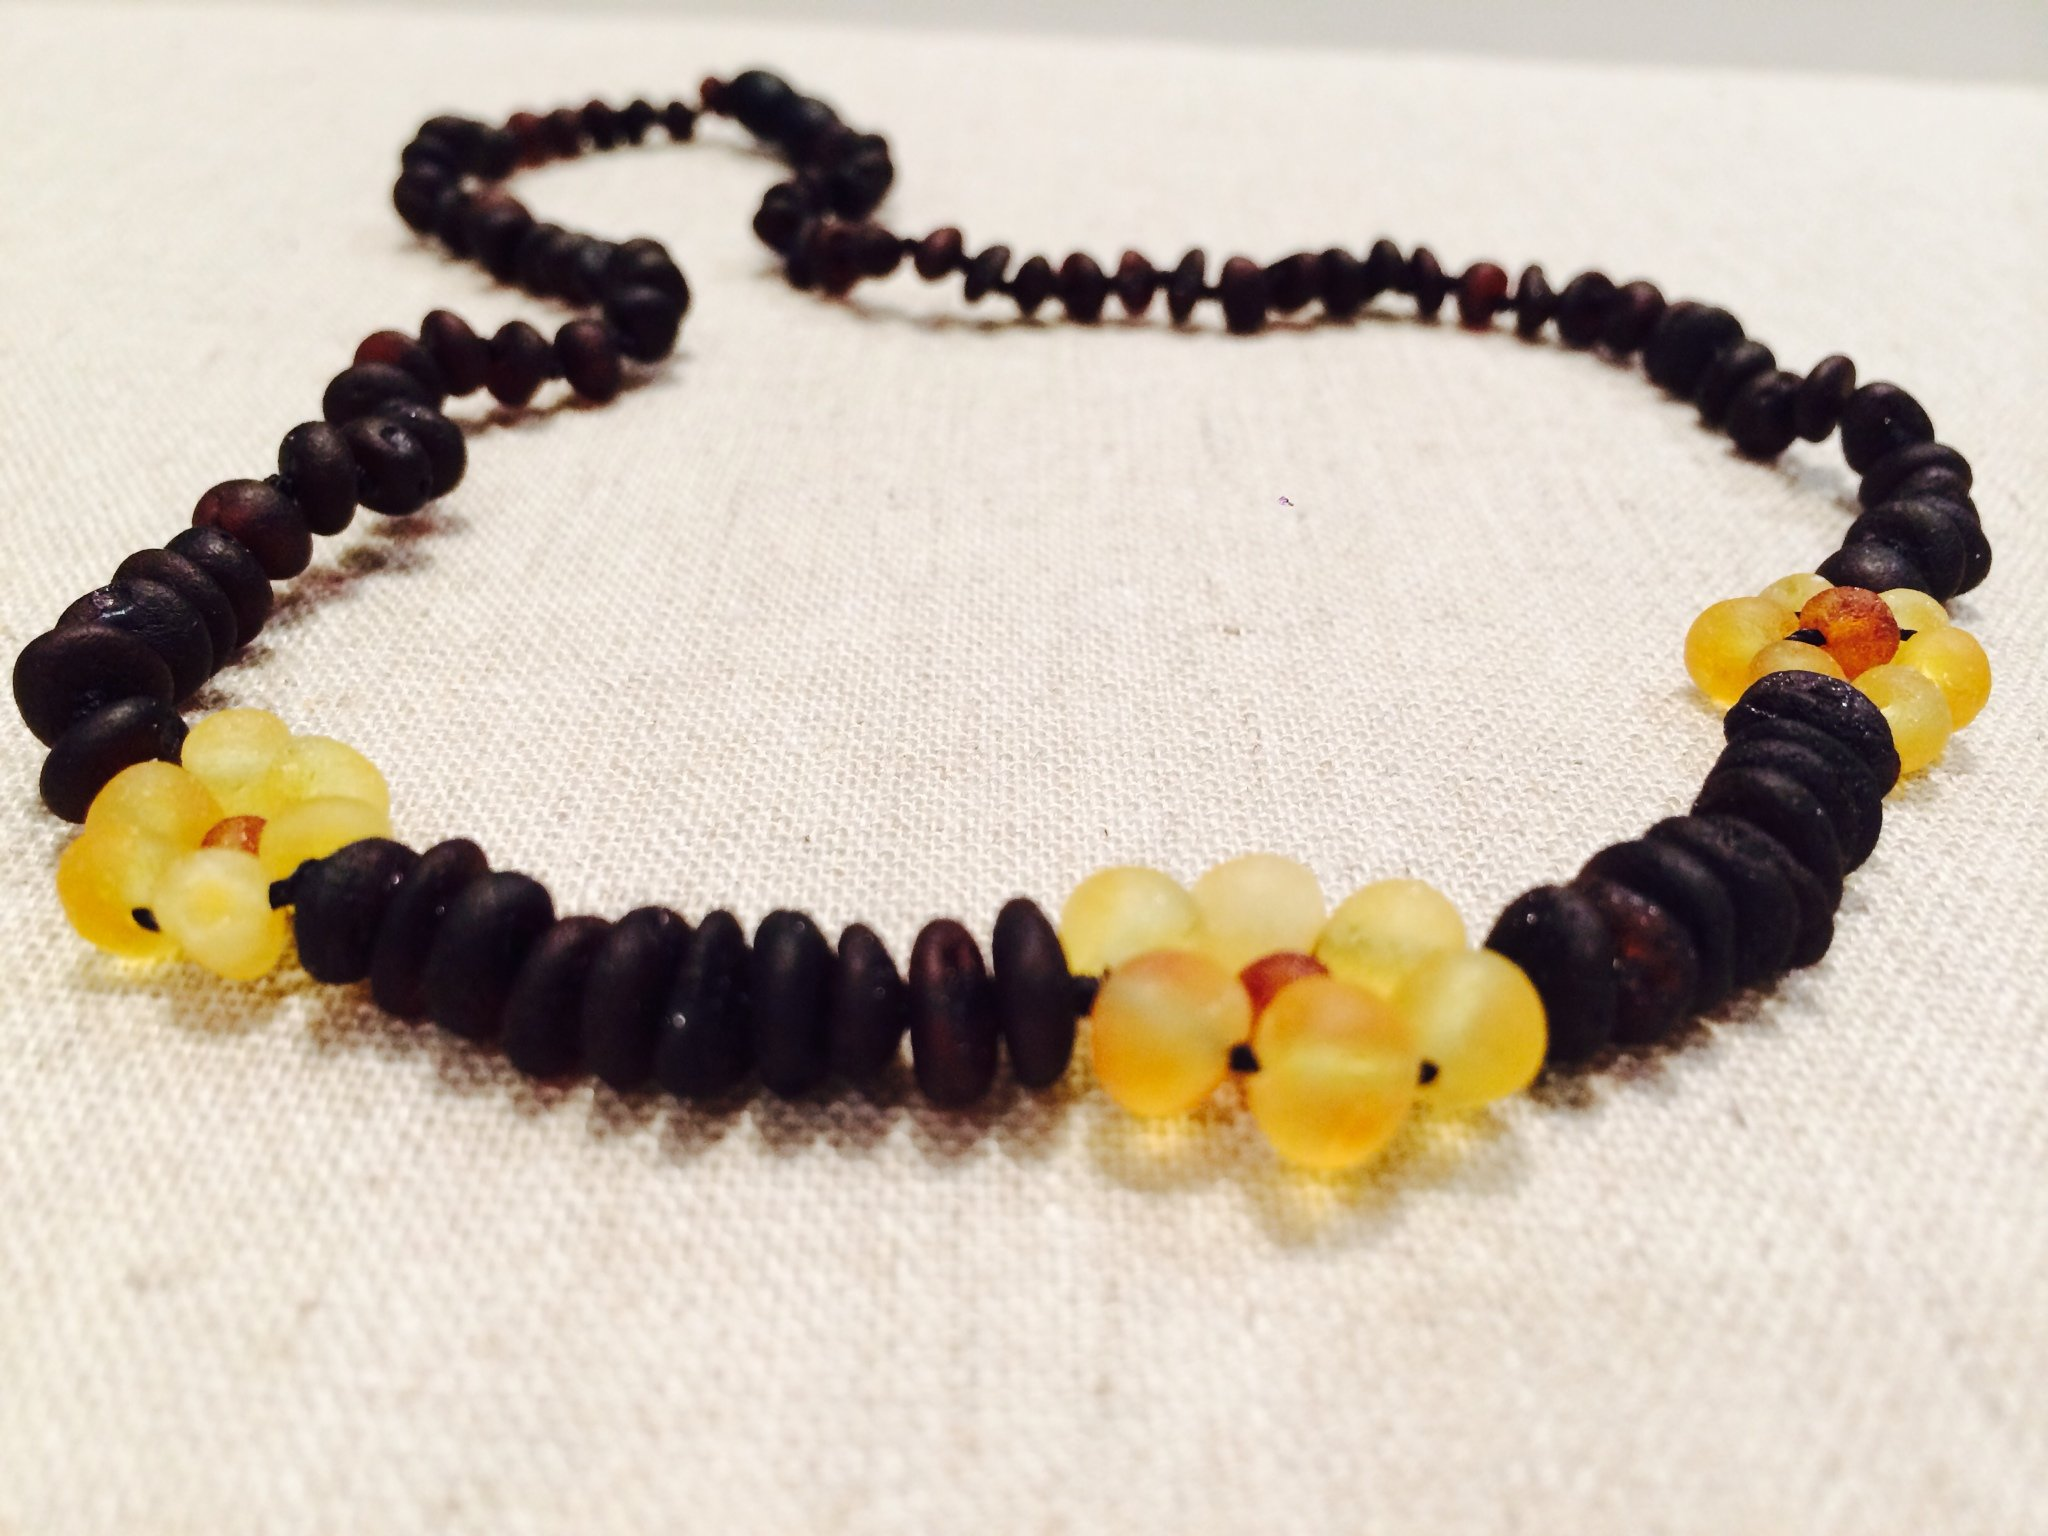 Raw 15 Inch Cherry Lemon Flower Unpolished Baltic Amber Necklace for adult, Child (Large beads Cherry Black Yellow Cognac Brown Lemon) - big kid, toddler, bub, teenager, child. Certified. by Baltic Essentials